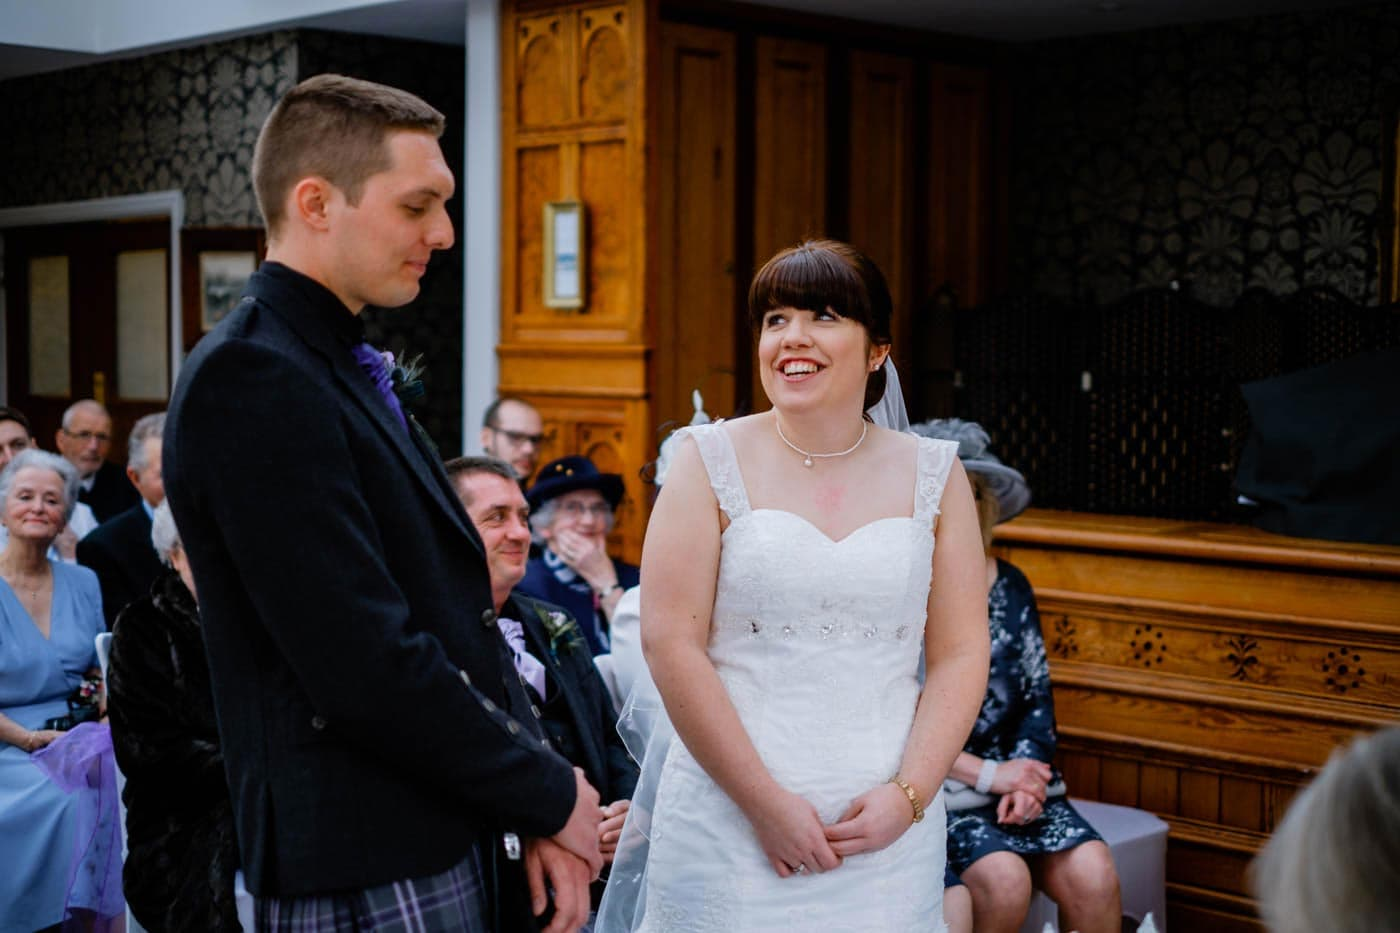 Scottish bride and groom during their wedding ceremony at Broadoaks Country House by Lake District wedding photographer Clive Blair Photography